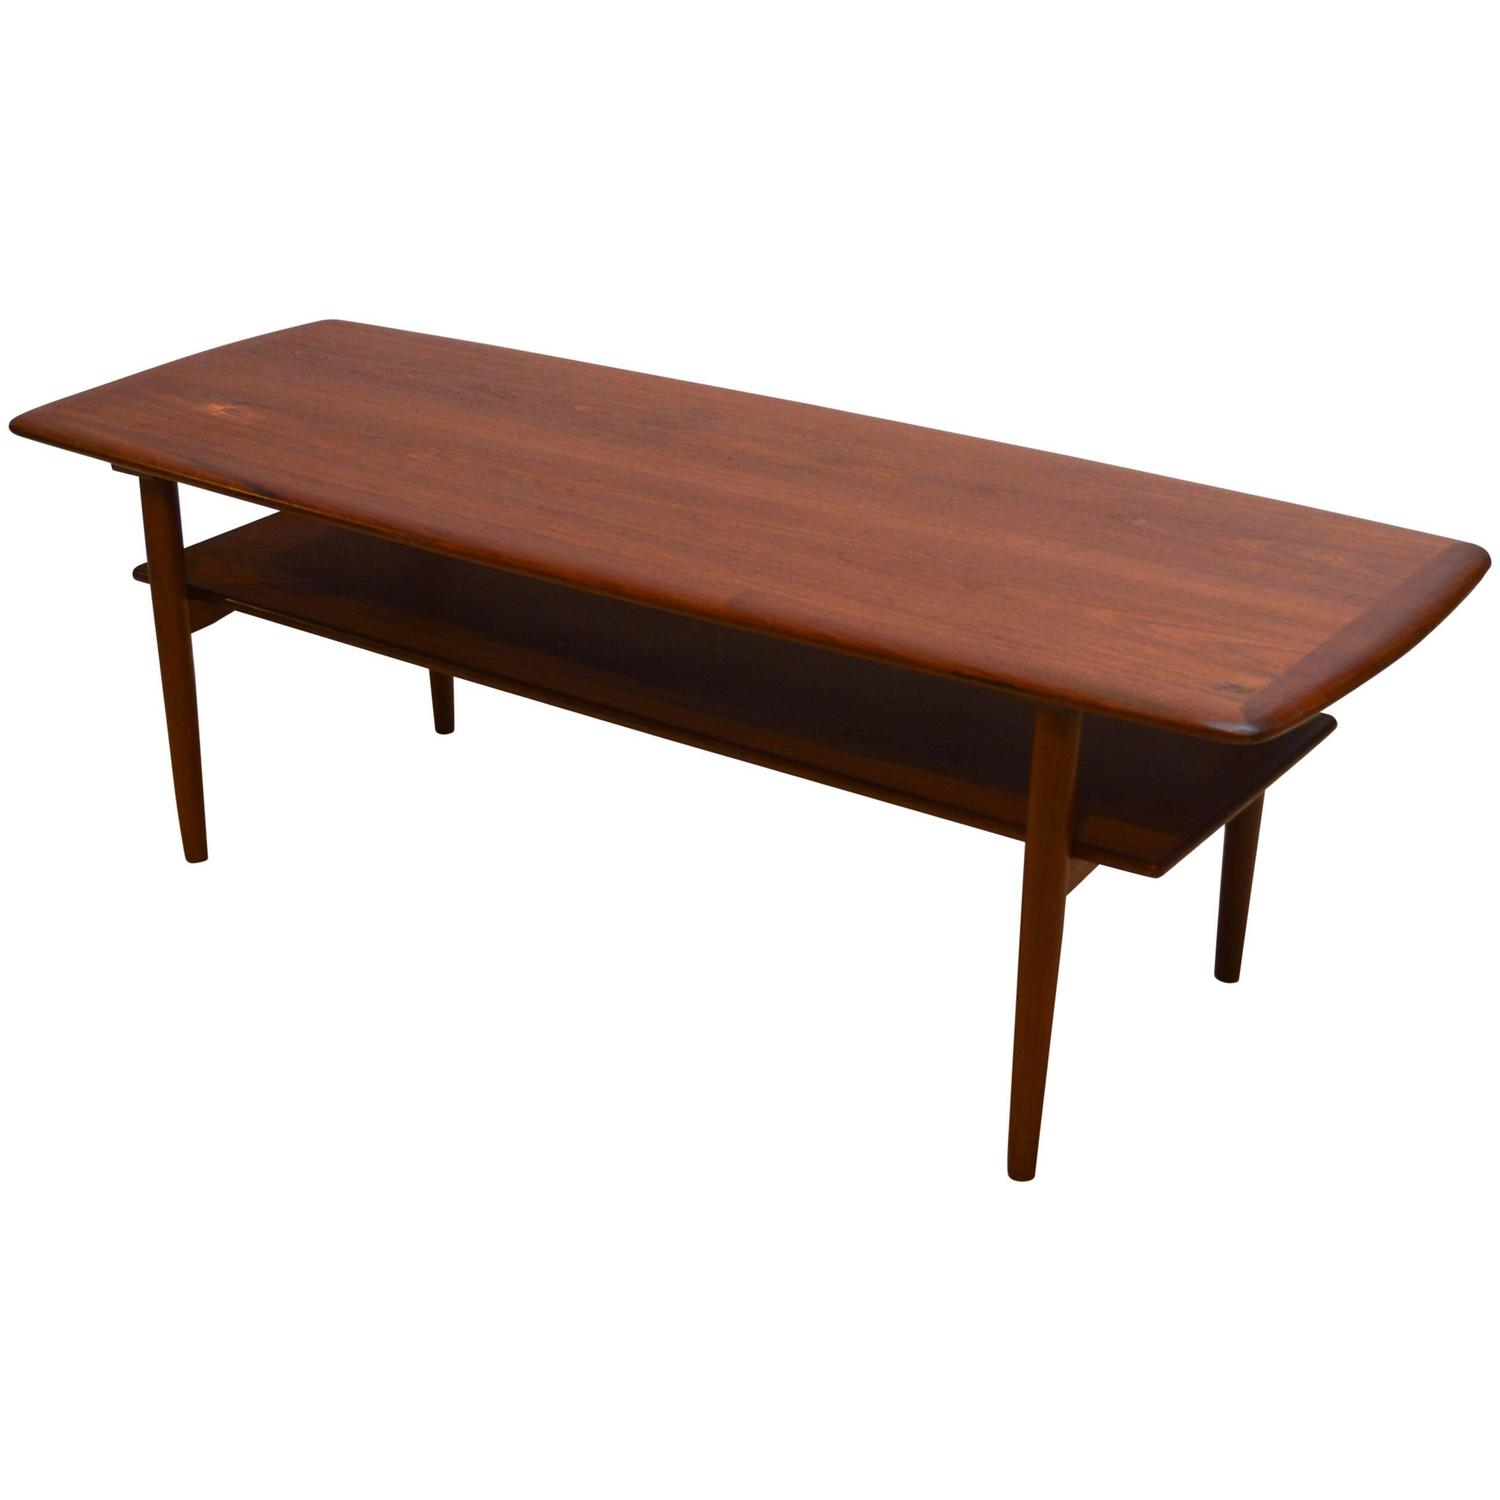 Danish Modern Teak Coffee Table With Shelf At 1stdibs